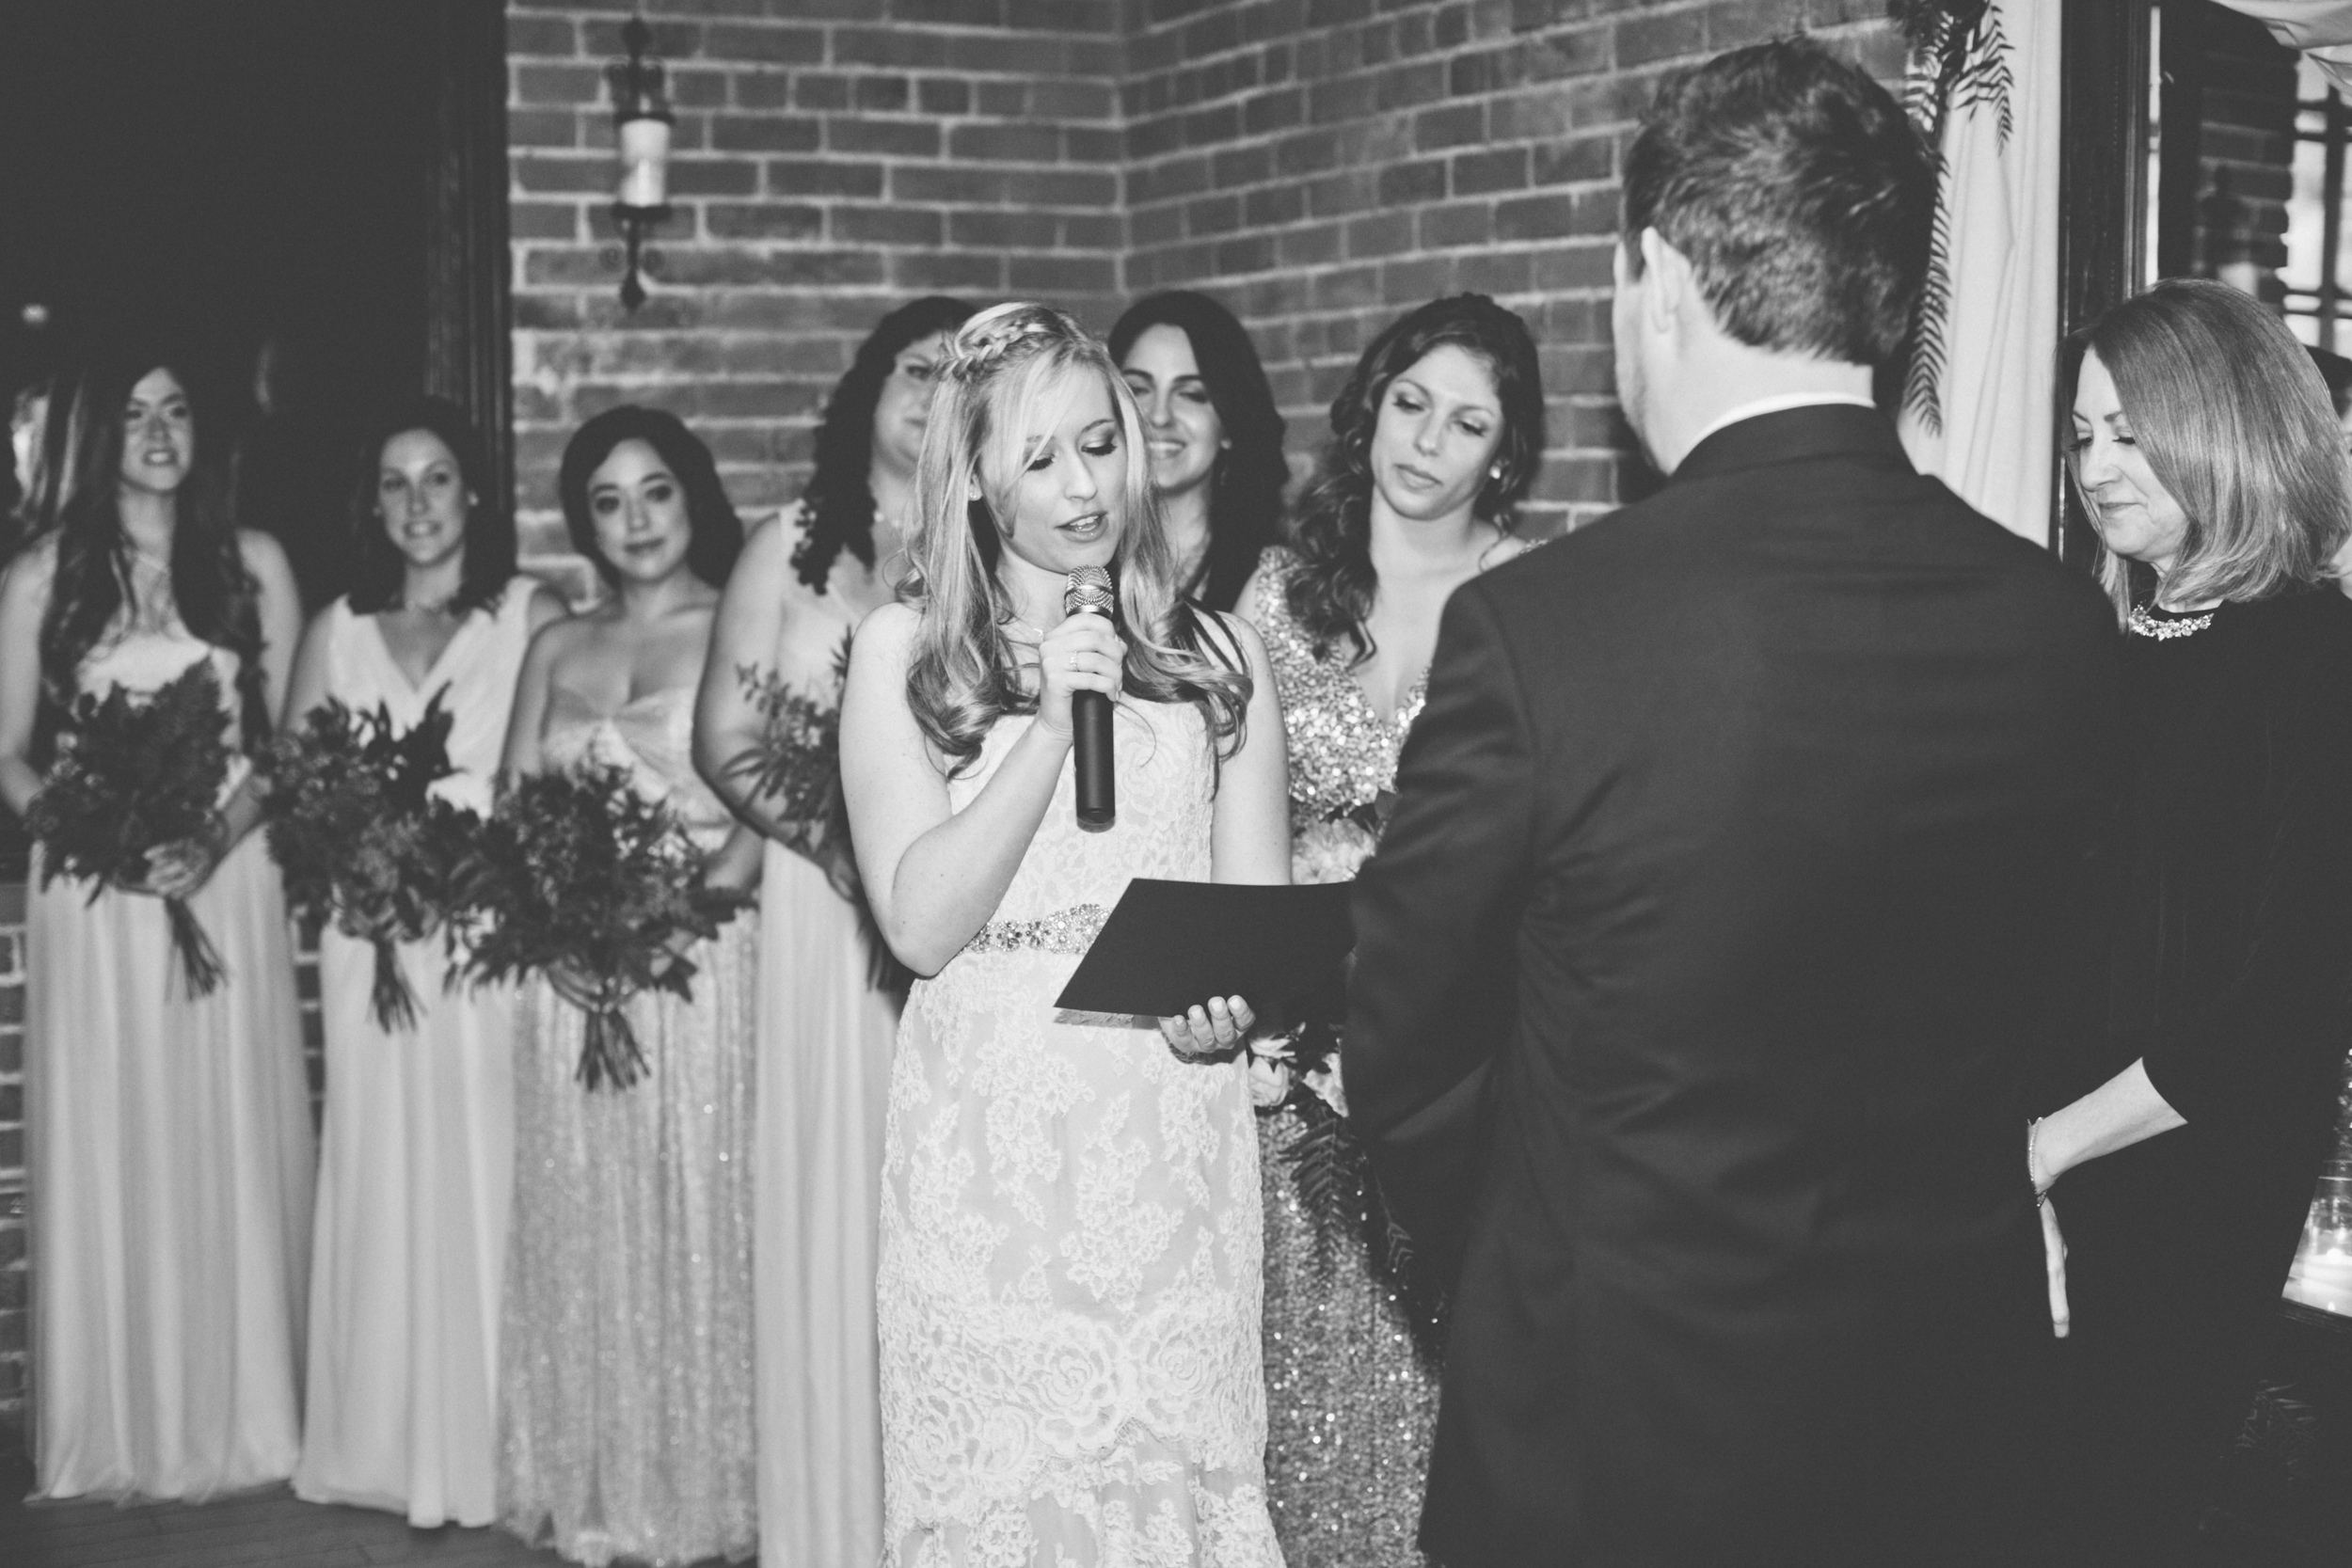 044 ceremony vows.JPG